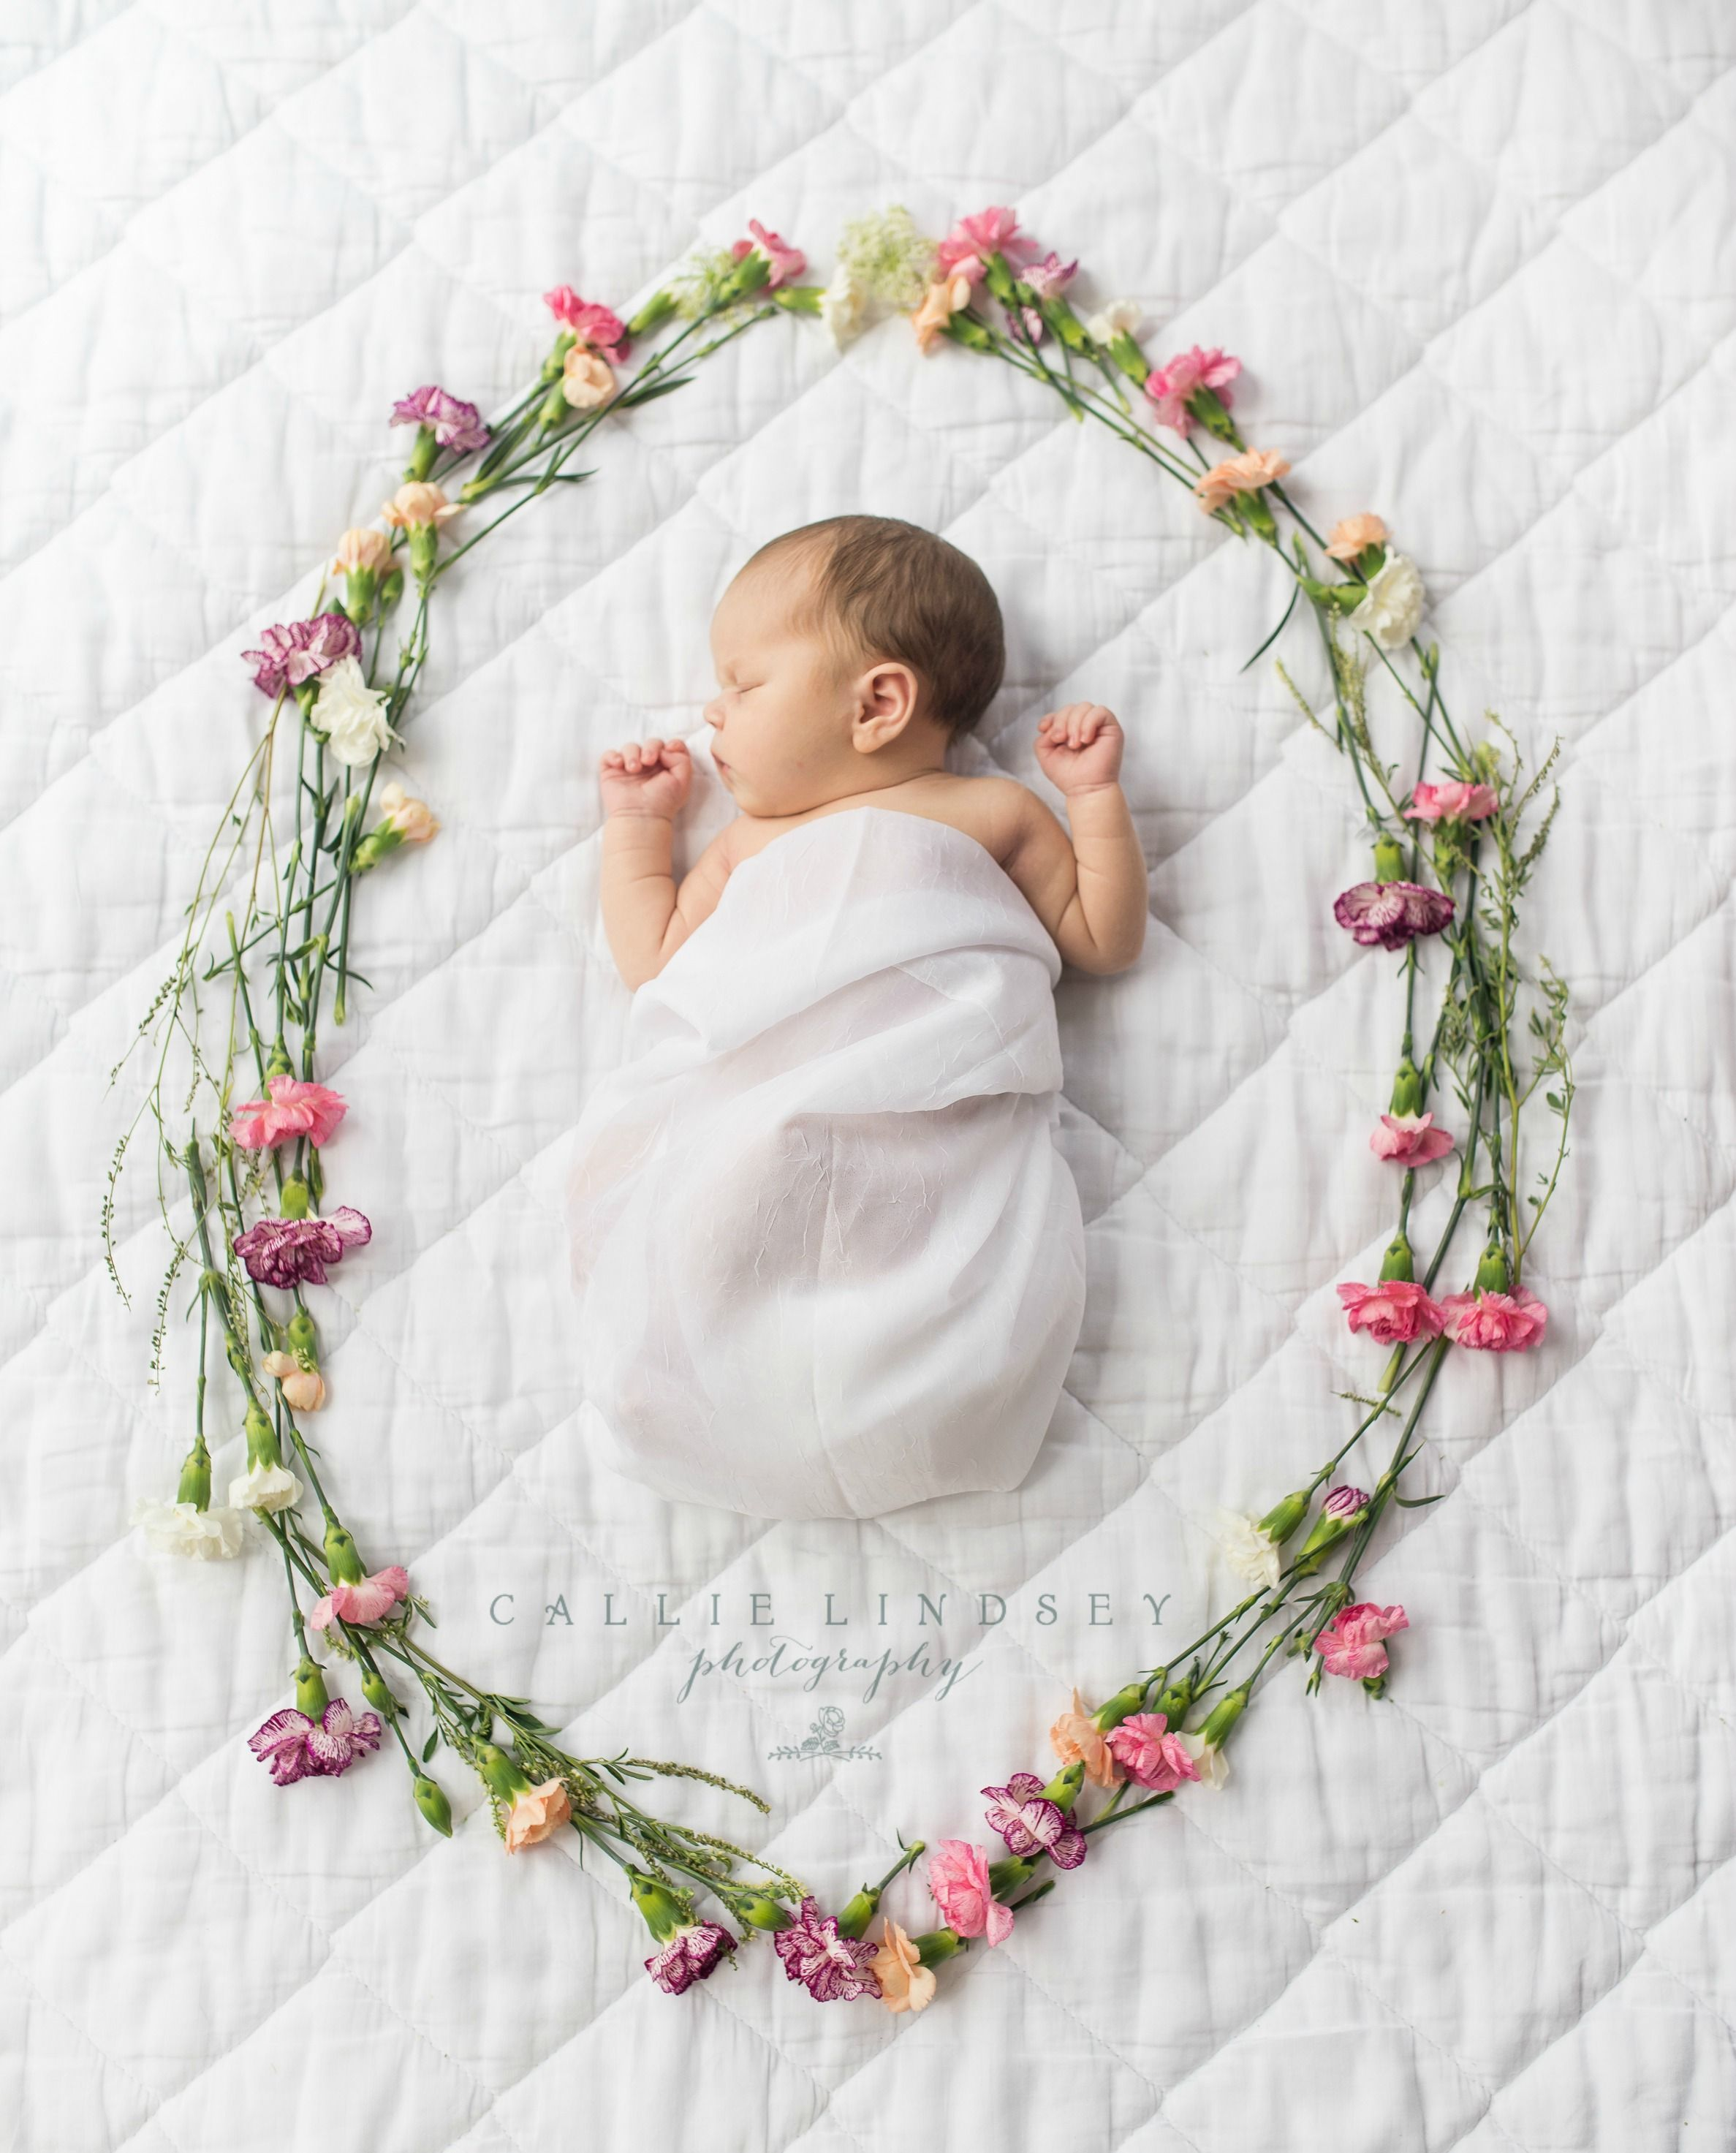 New Baby Floral Gift Ideas : Flower wreath newborn photography